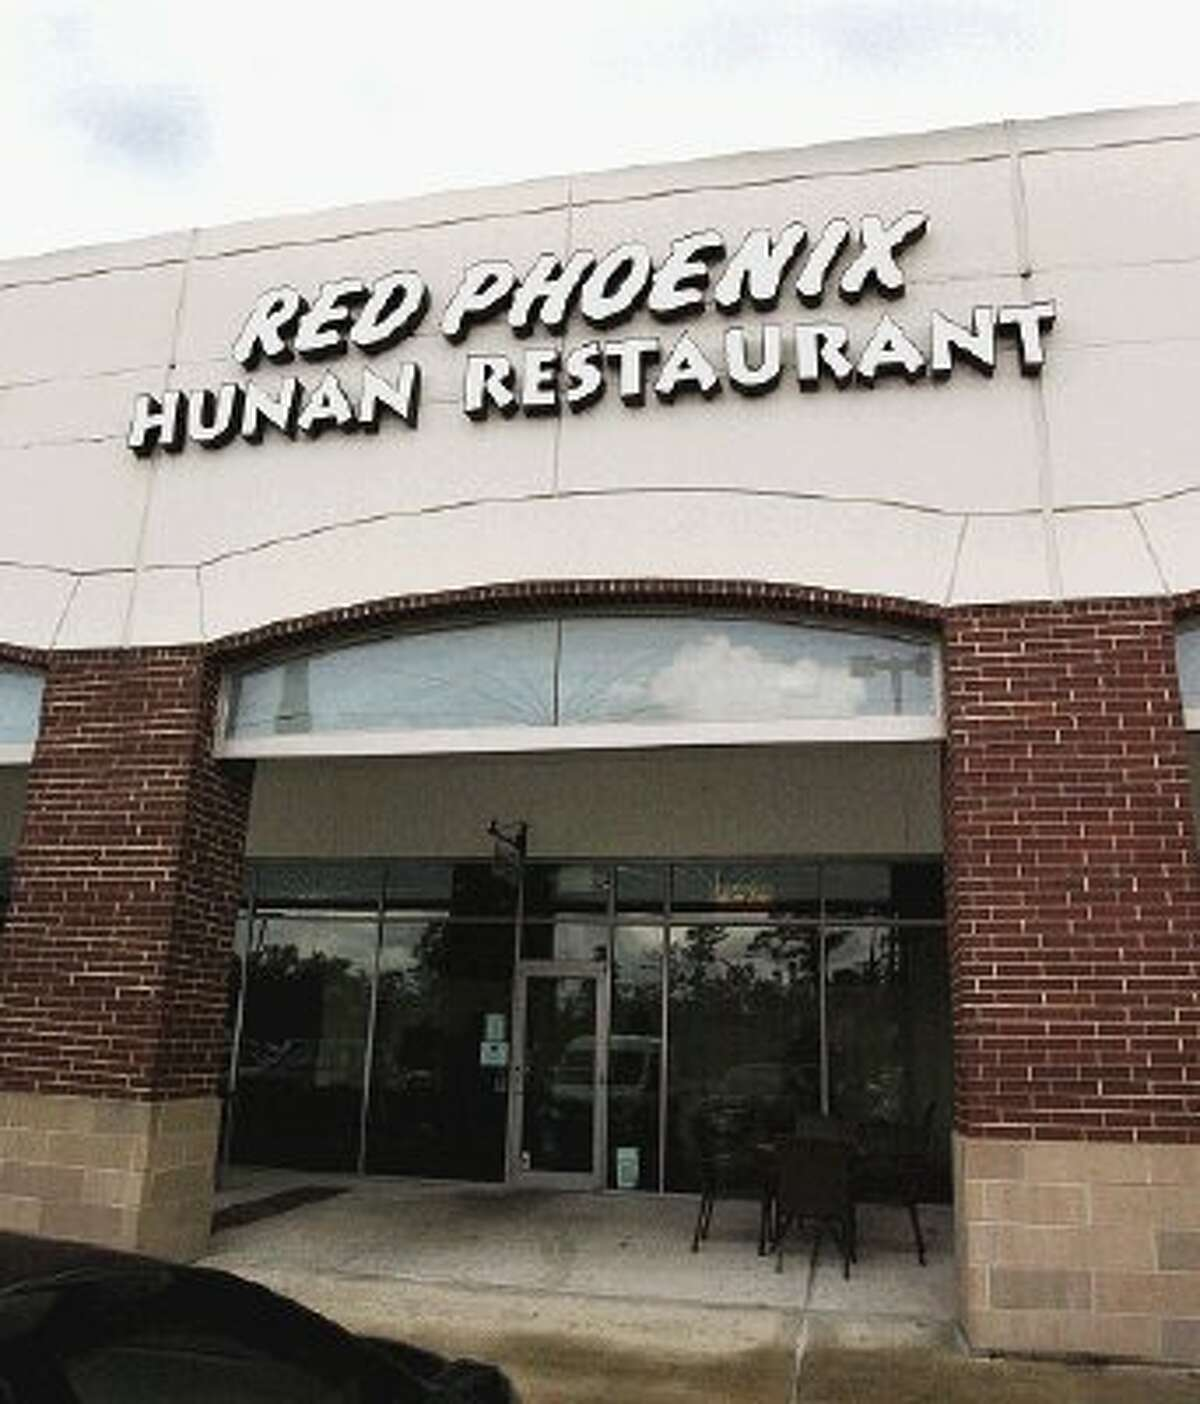 The Red Phoenix Hunan Restaurant offers traditional Chinese food, sushi and Asian fusion cuisine in their Conroe location.